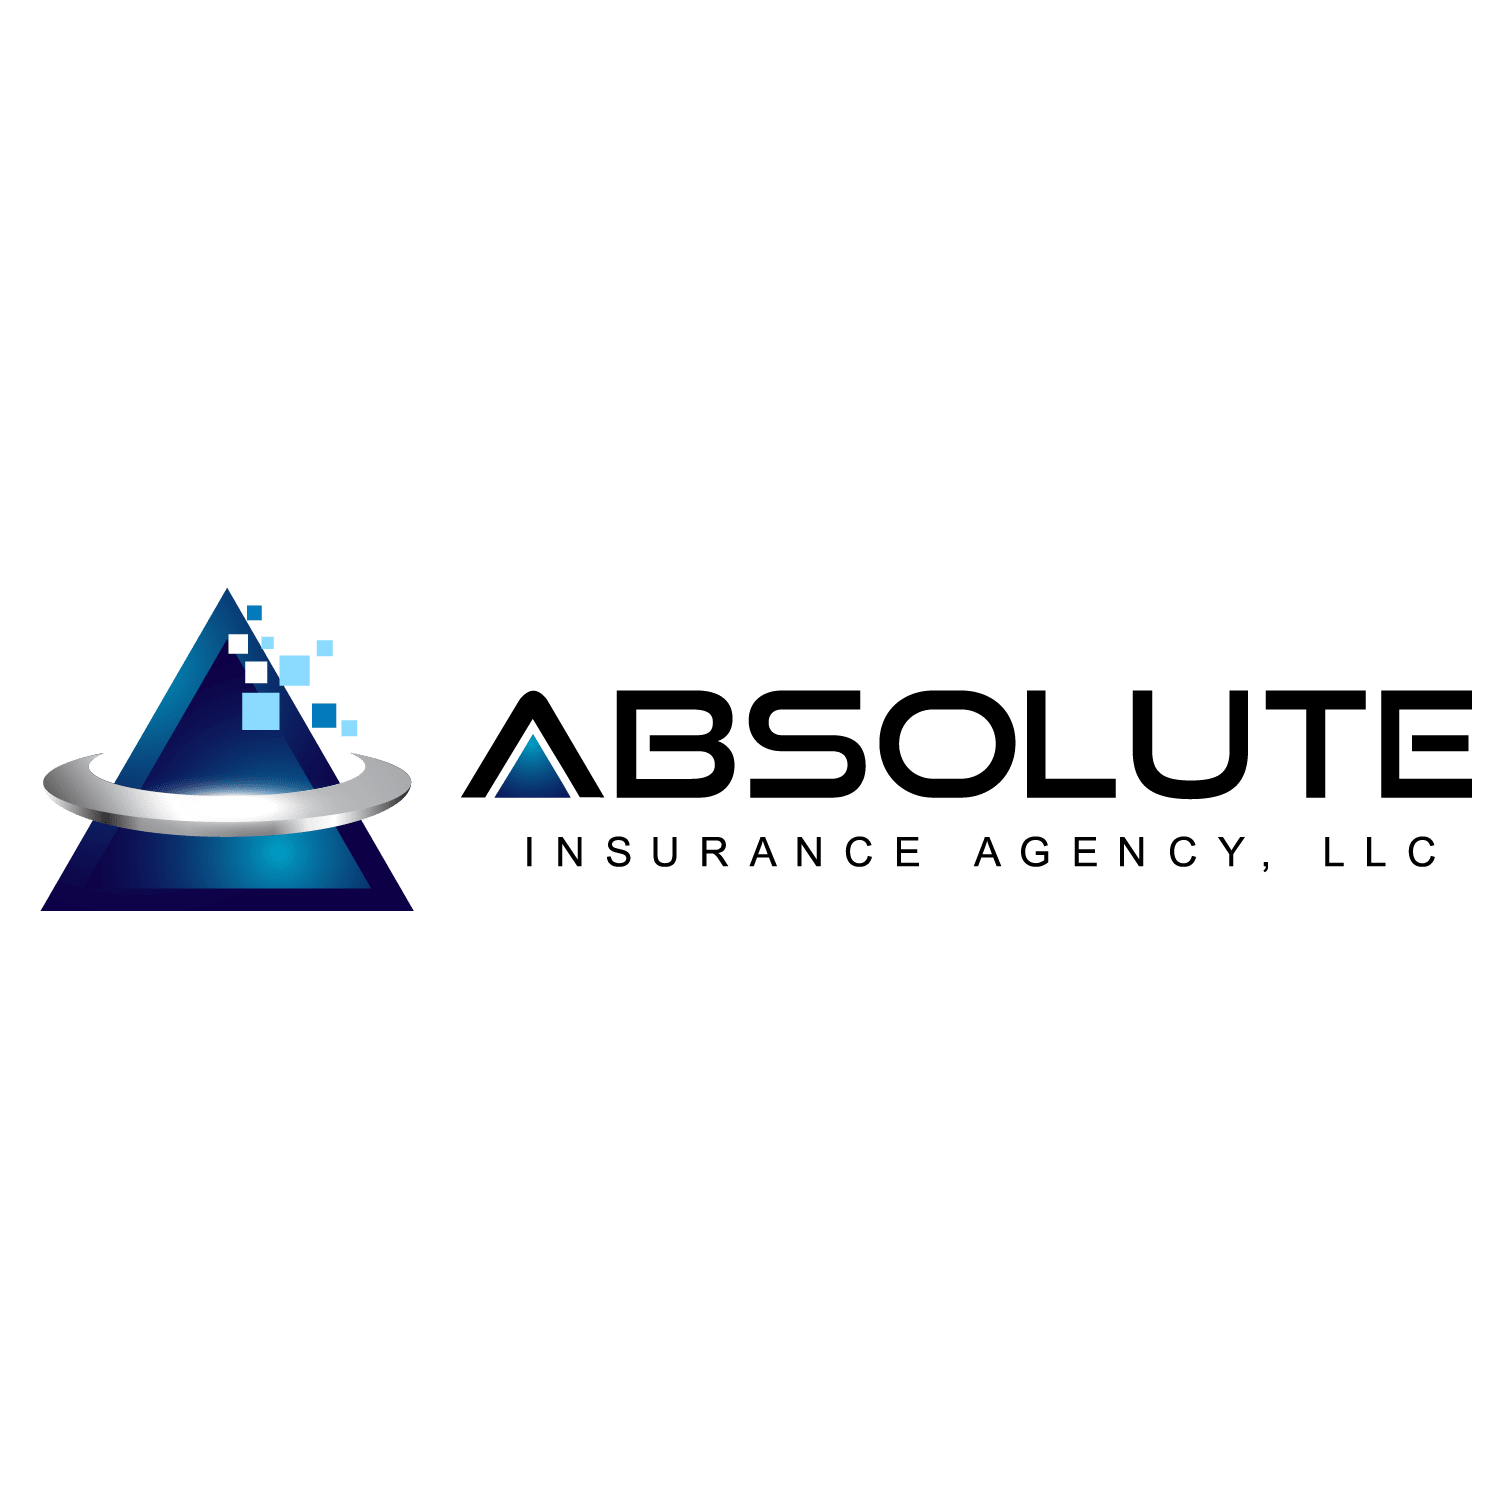 Absolute Insurance Agency